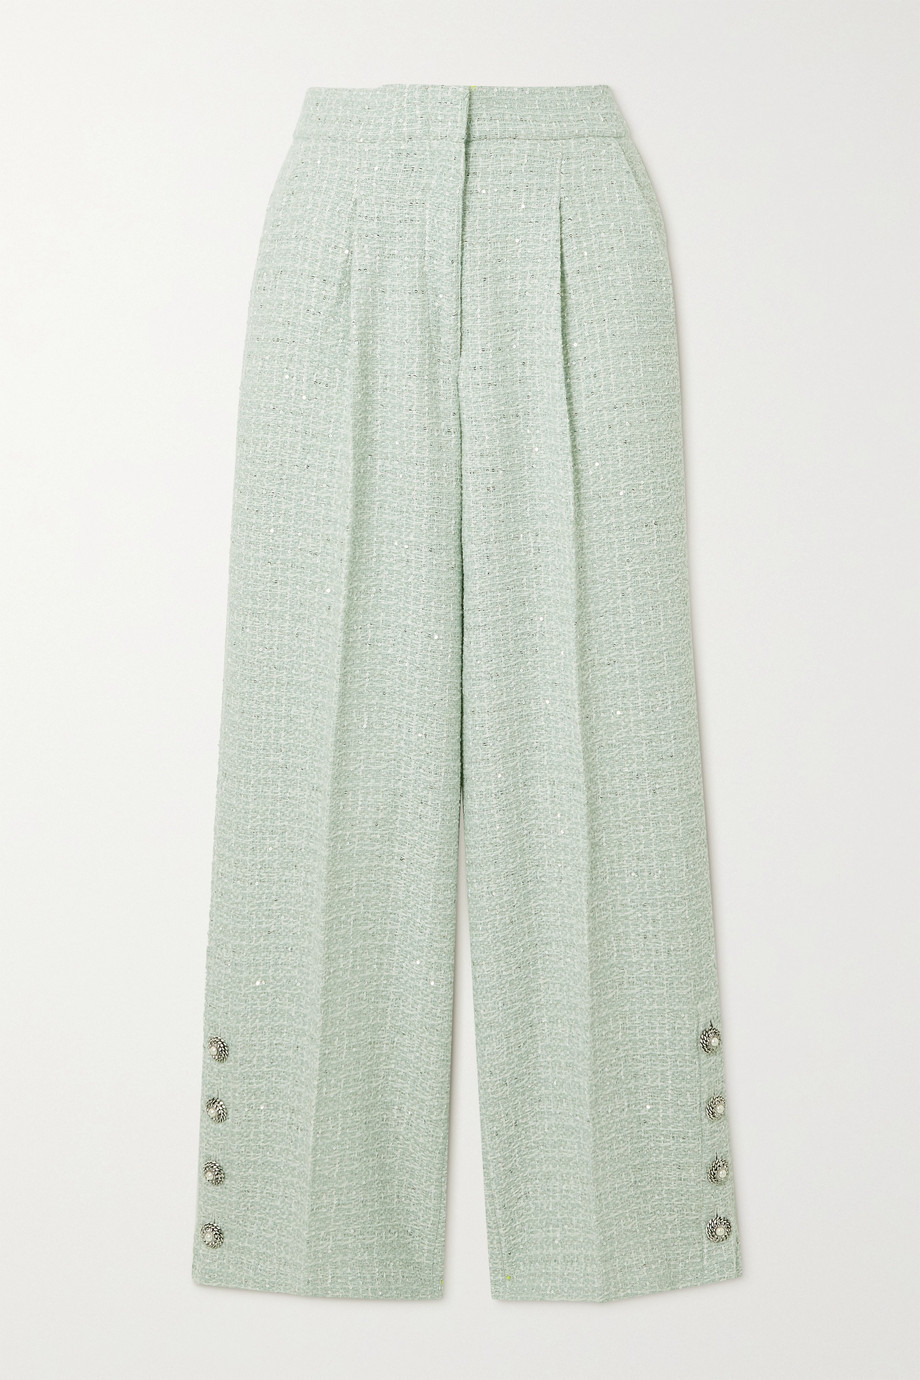 Alessandra Rich Button-embellished sequined wool-blend tweed straight-leg pants